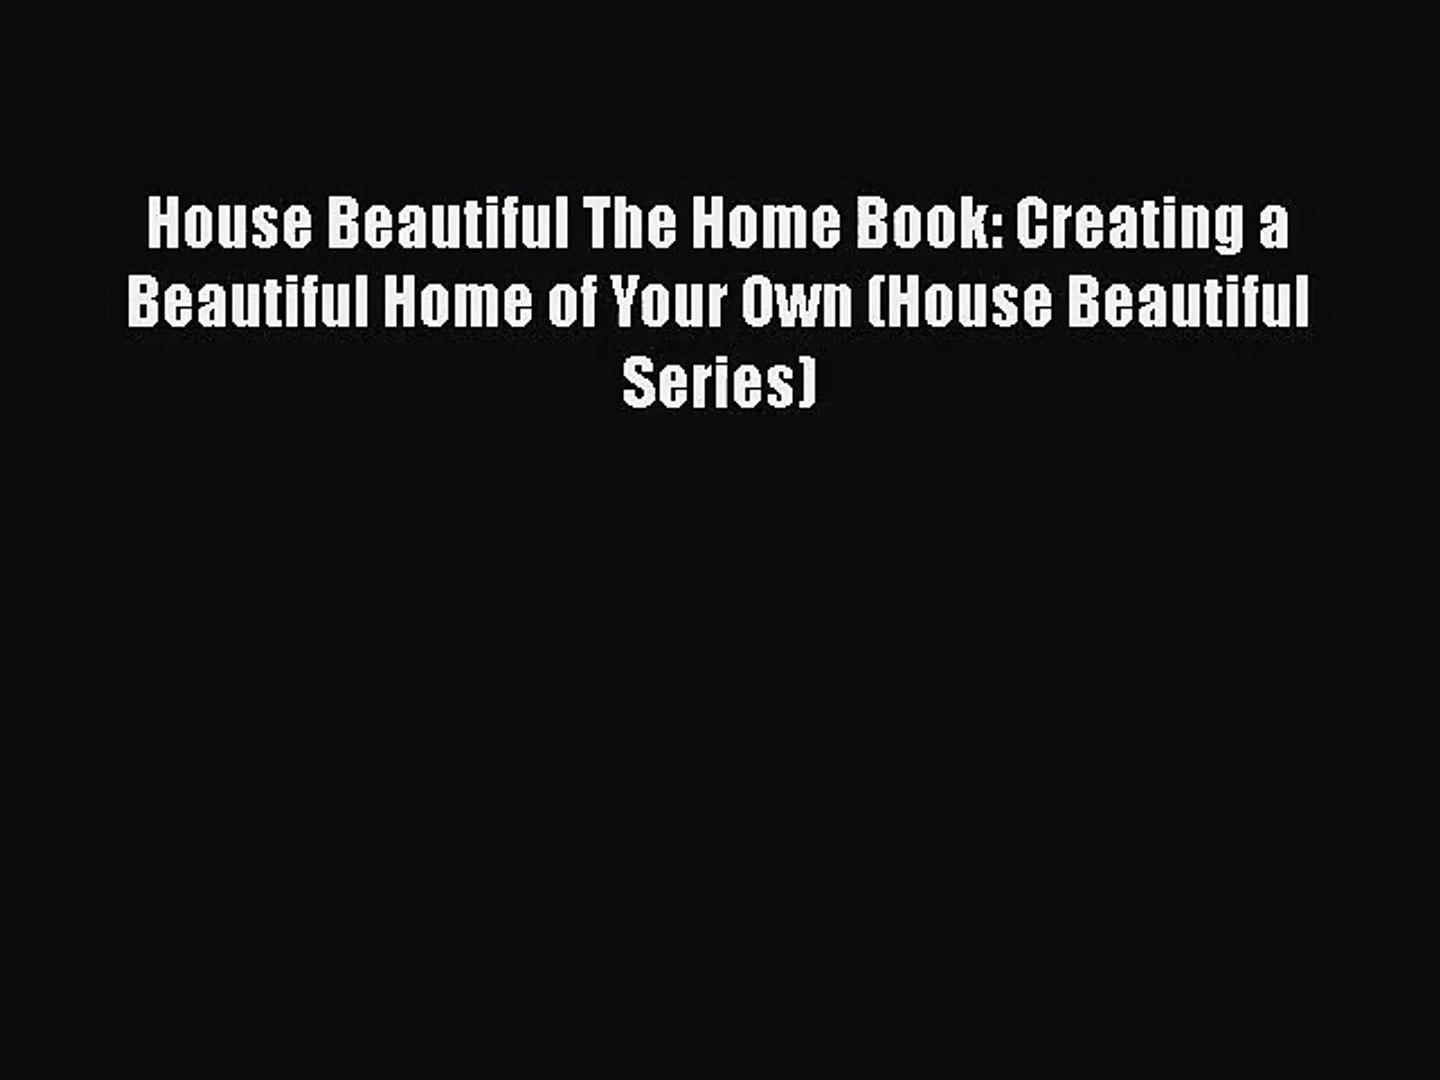 PDF Download House Beautiful The Home Book: Creating a Beautiful Home of Your Own (House Beautiful